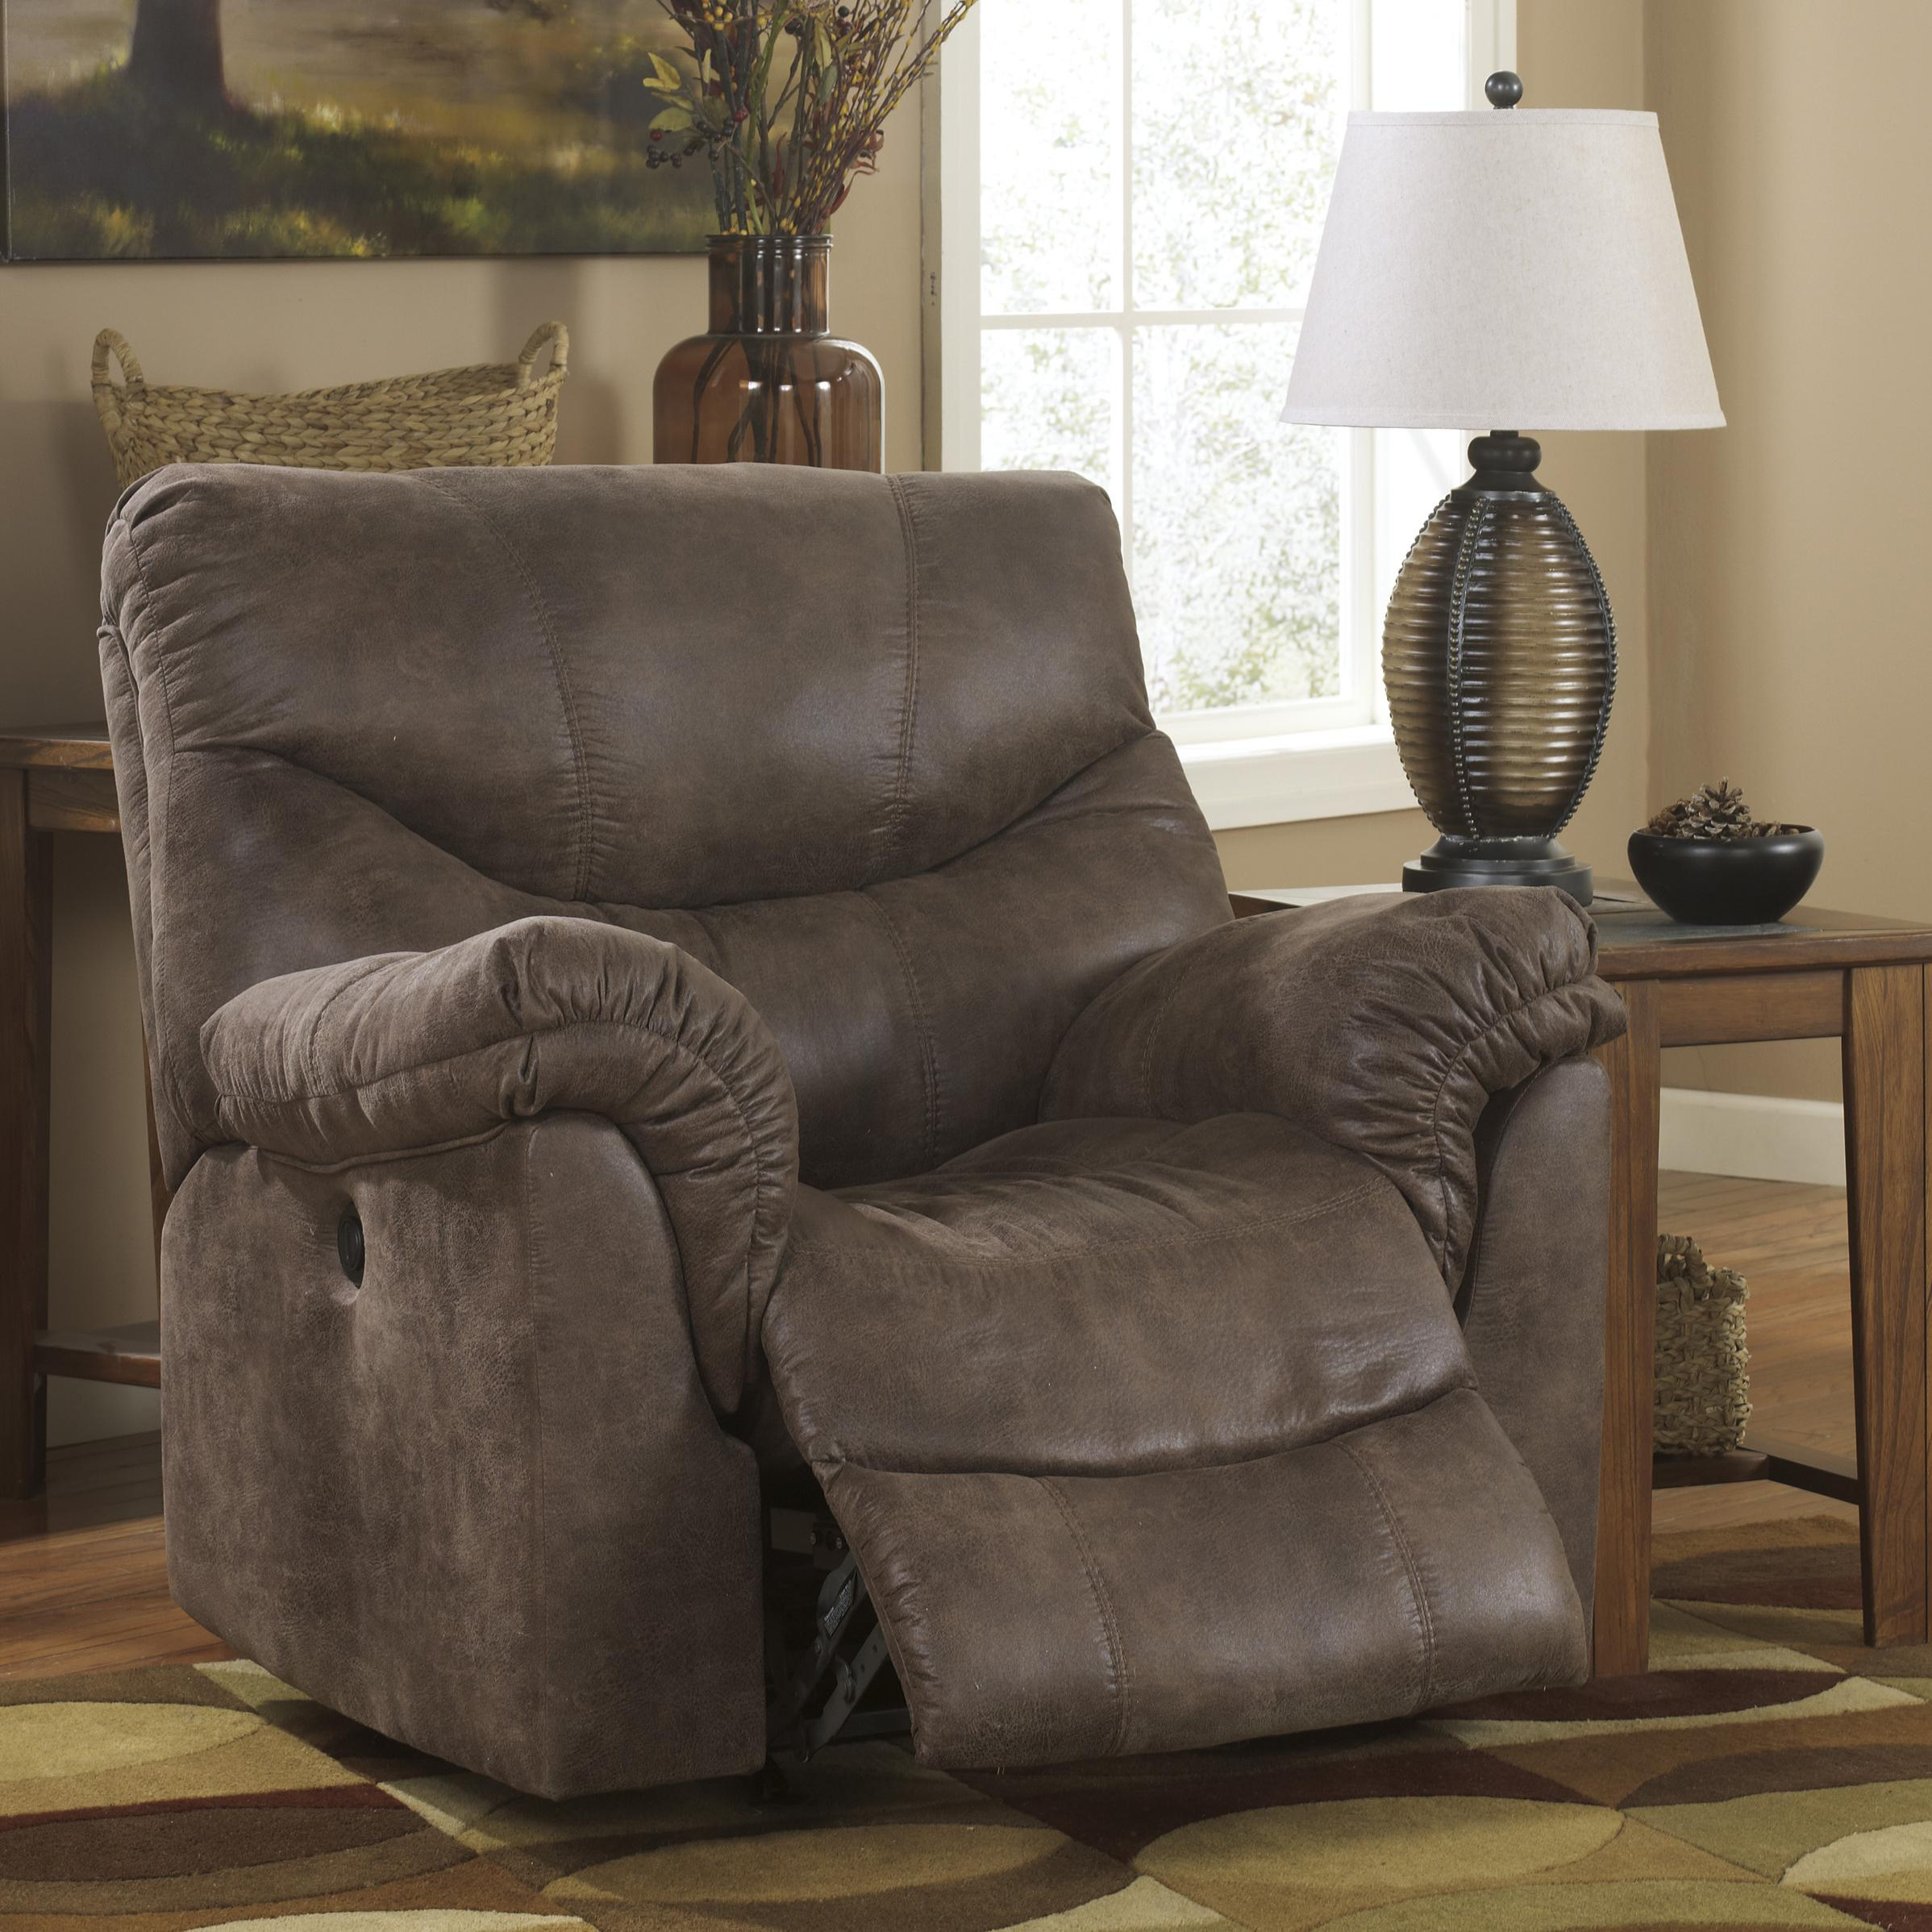 Ashley signature design alzena gunsmoke 7140025 rocker recliner with casual style dunk - Stylish rocker recliner ...